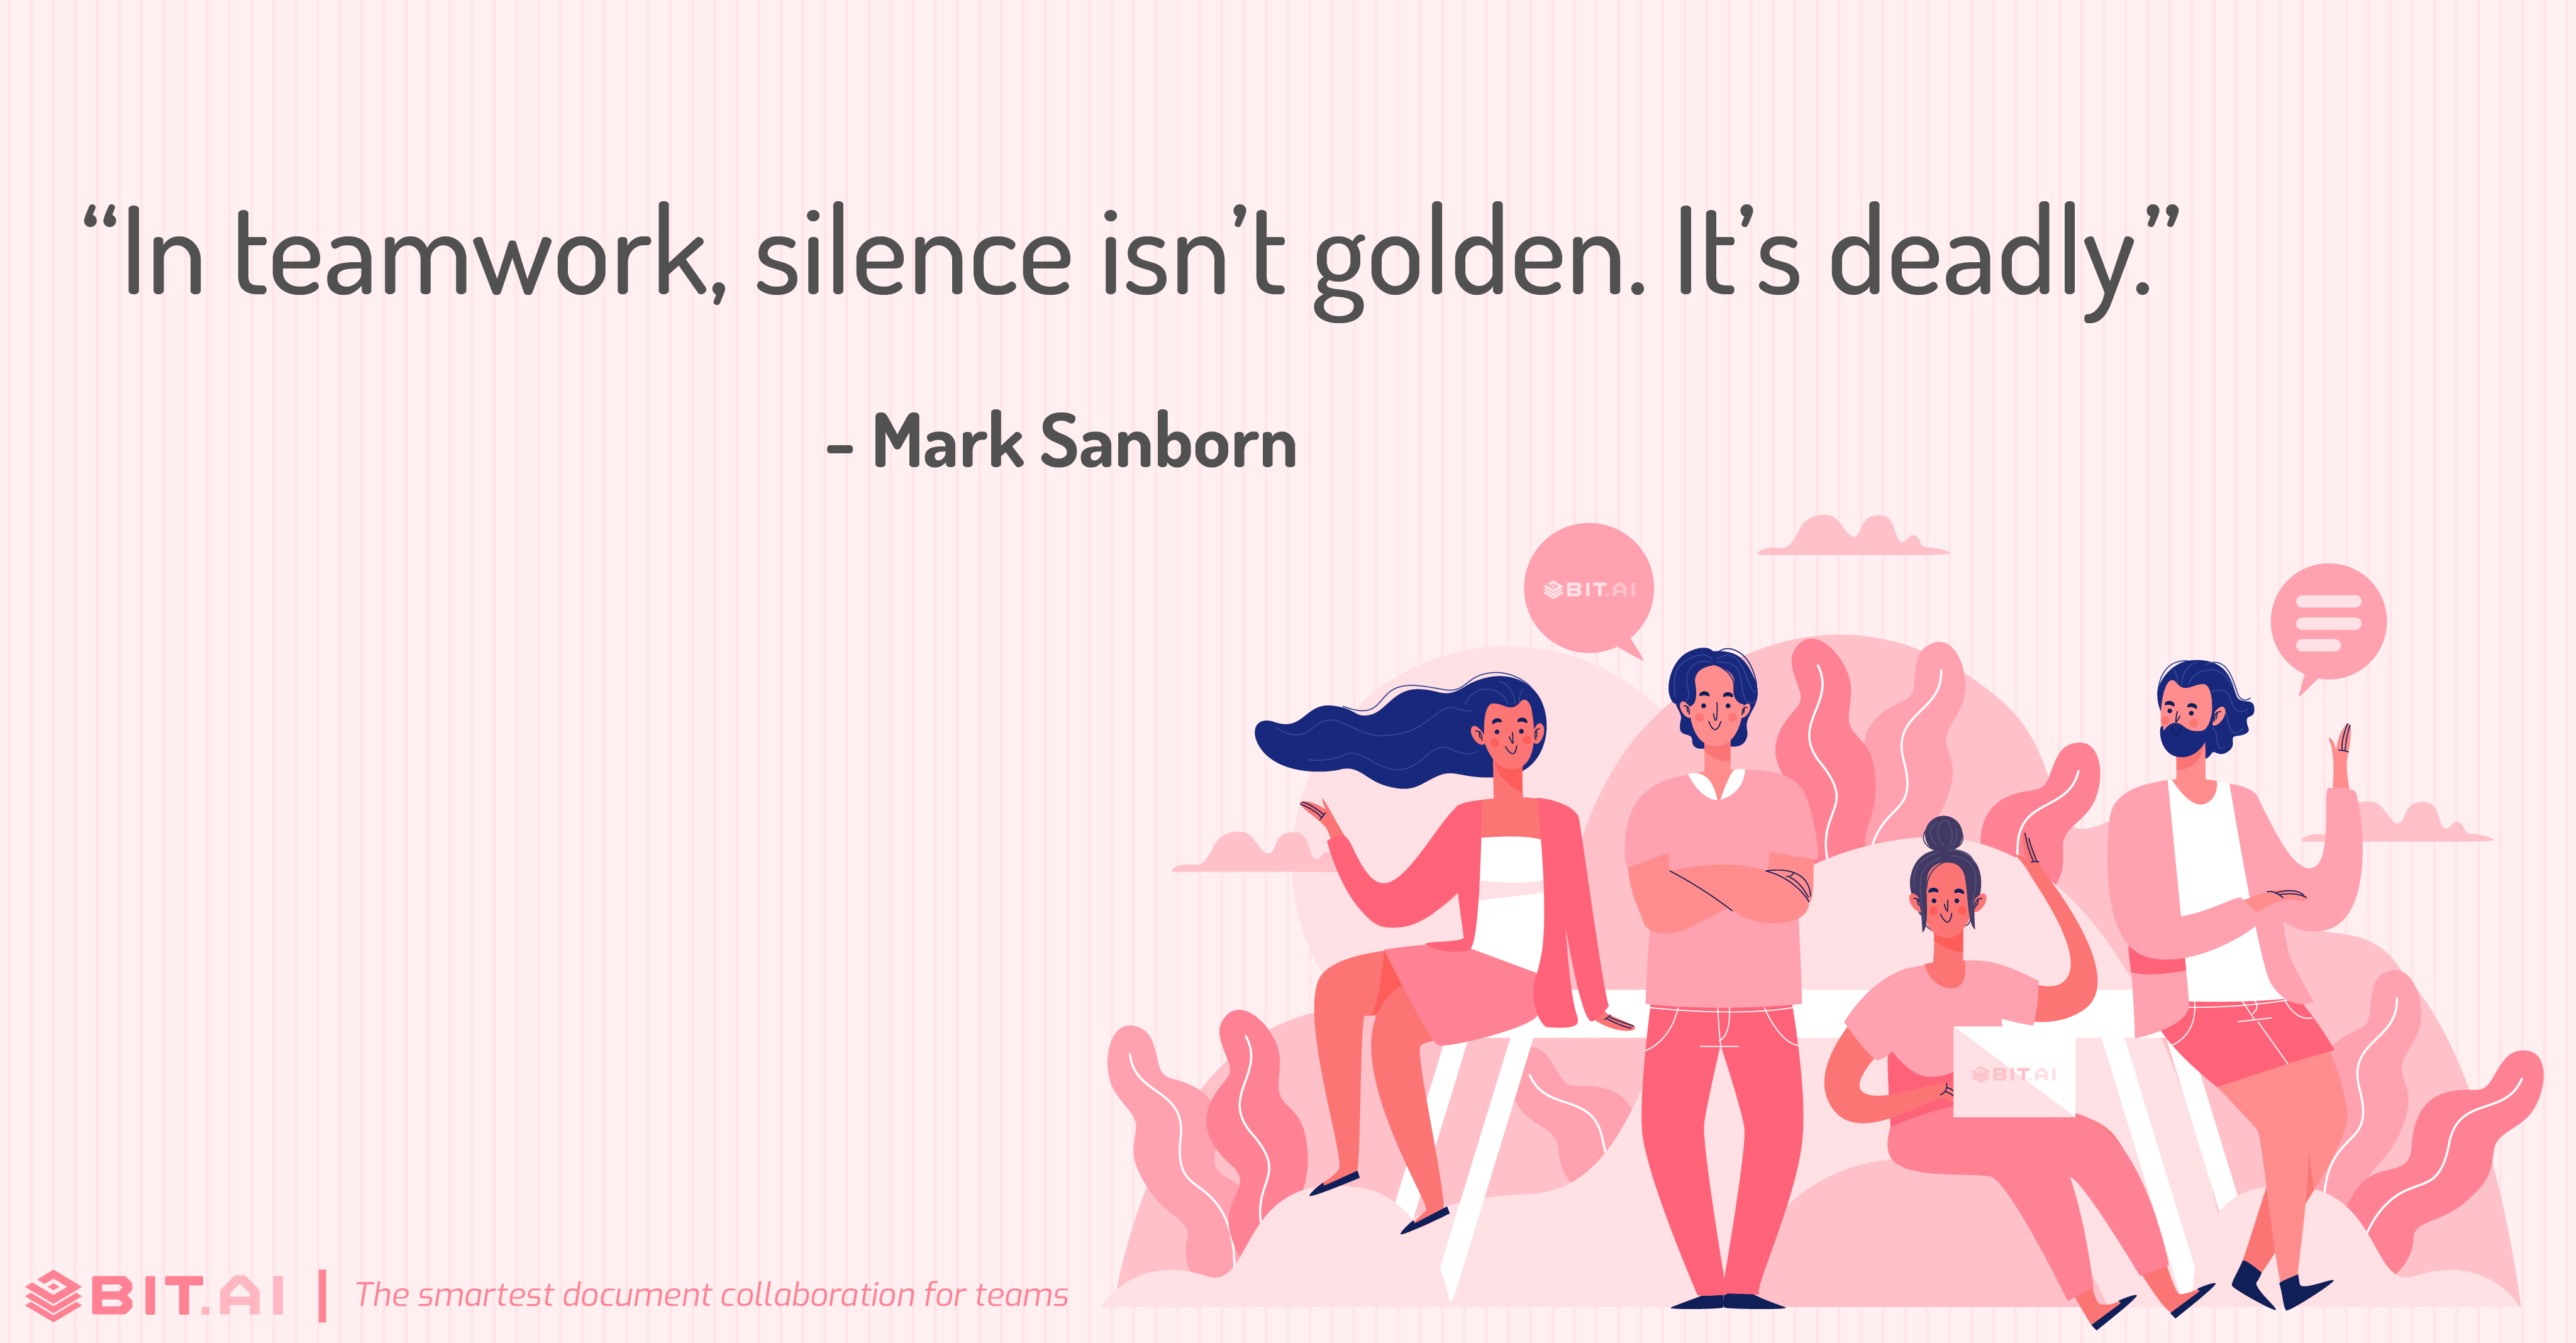 """In teamwork, silence isn't golden. It's deadly."" - Mark Sanborn"